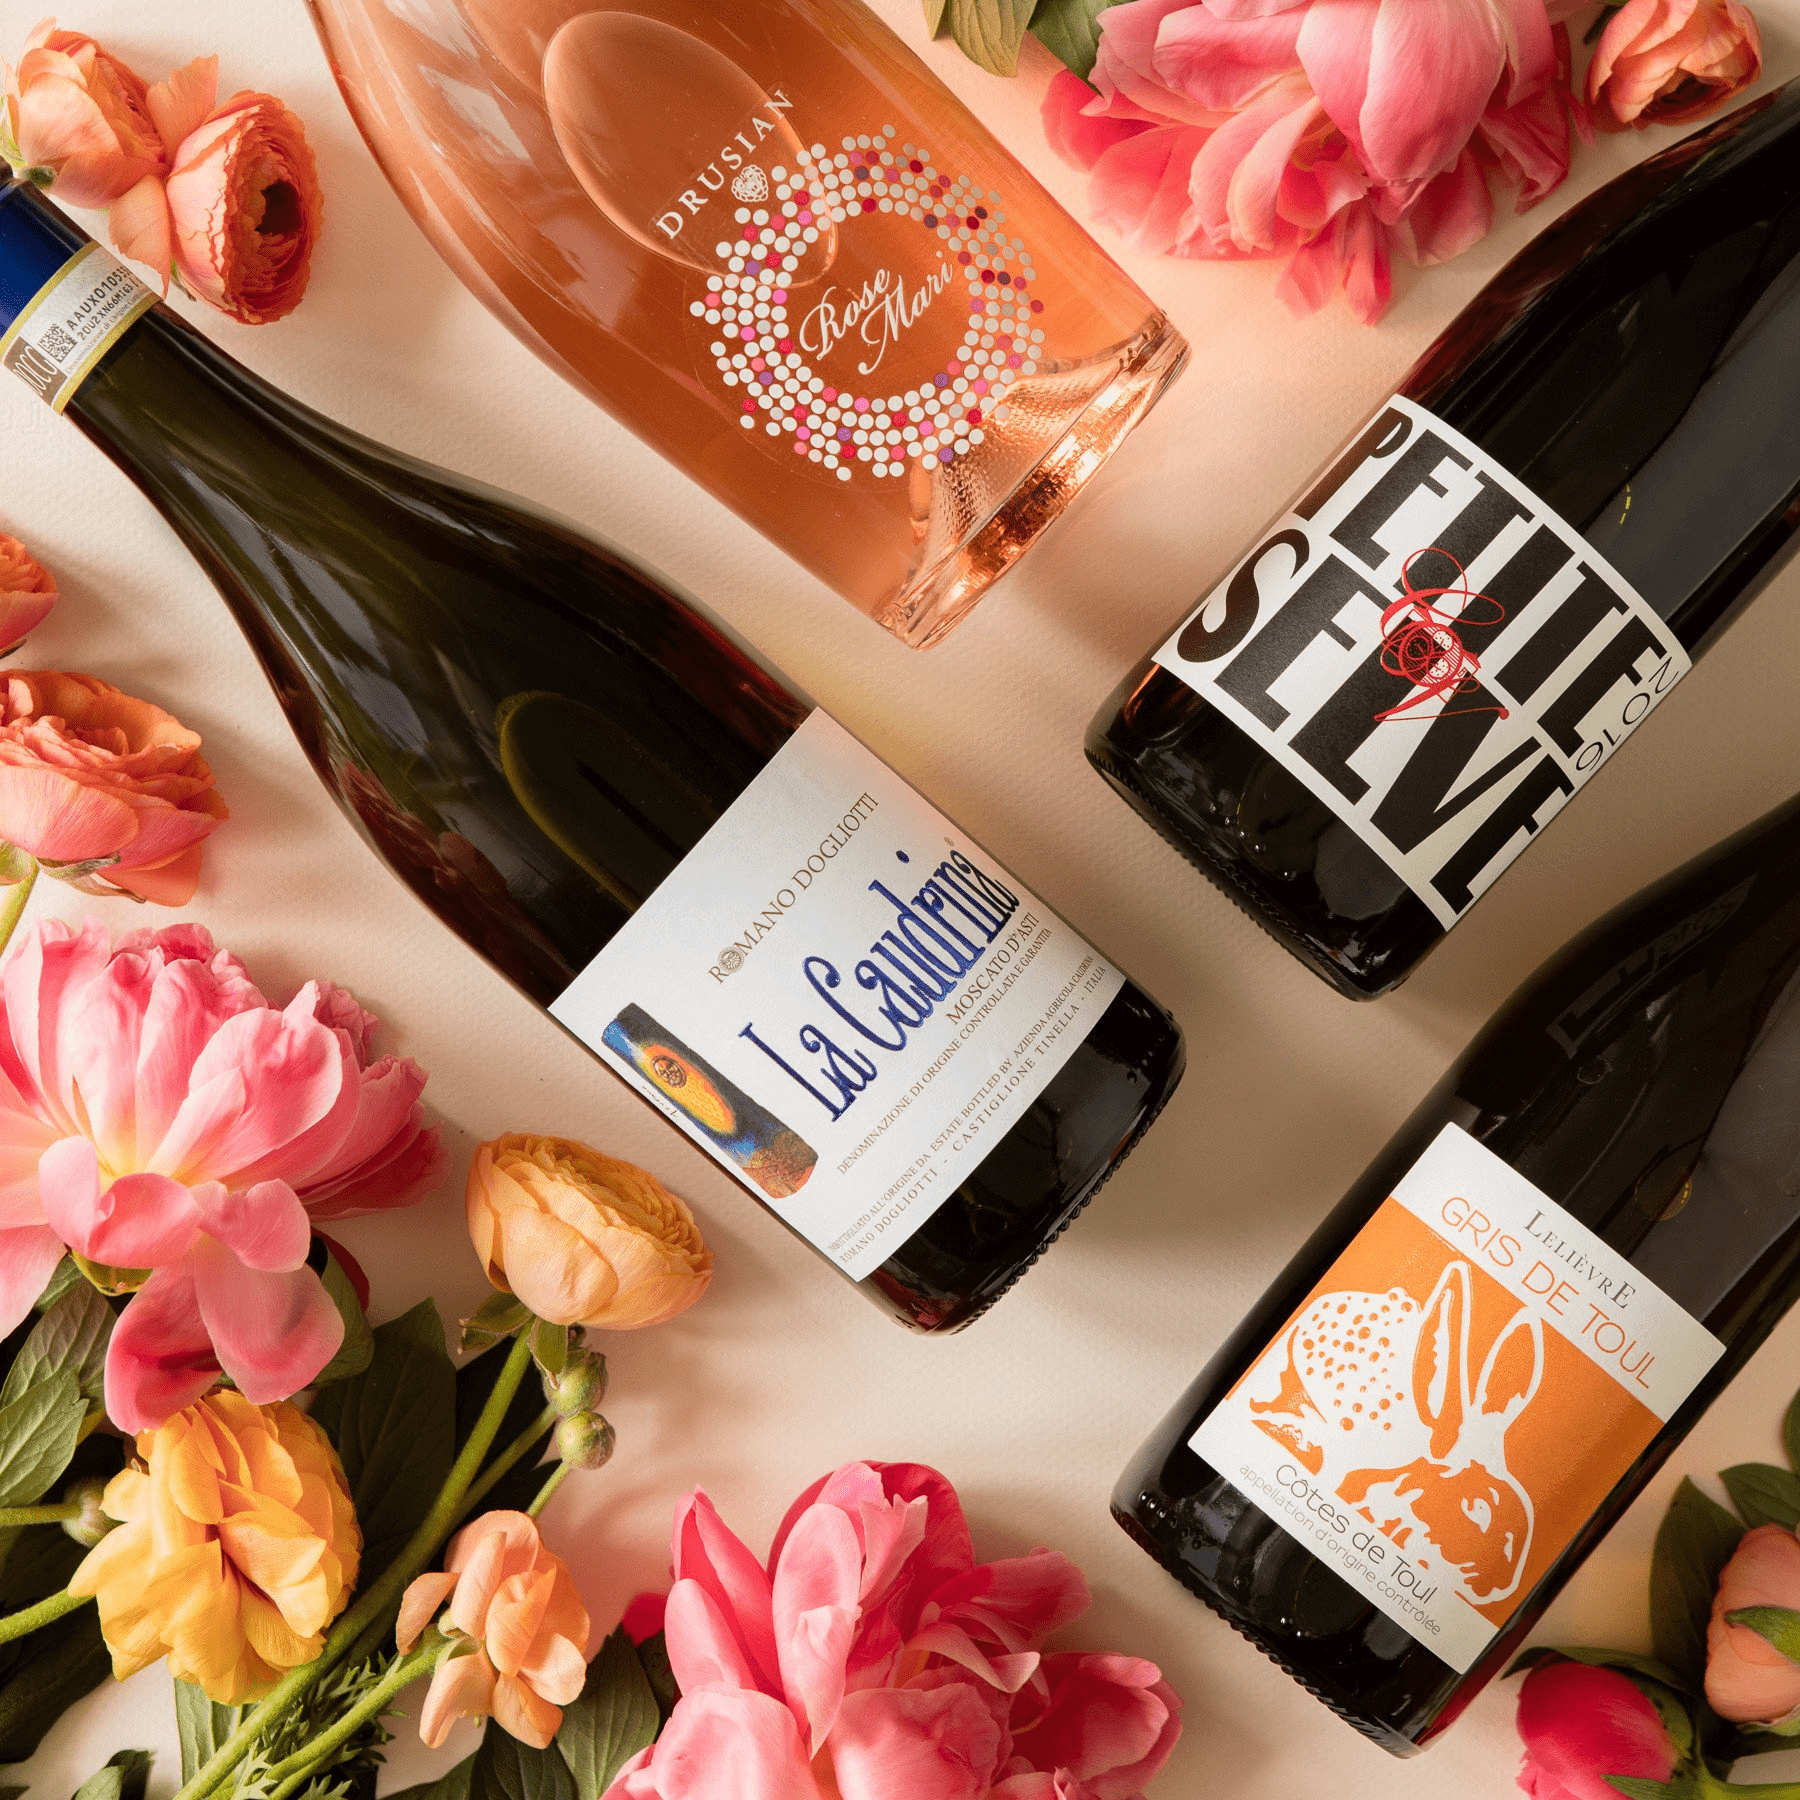 PLONK Wine Club Mother's Day Box Available Now!